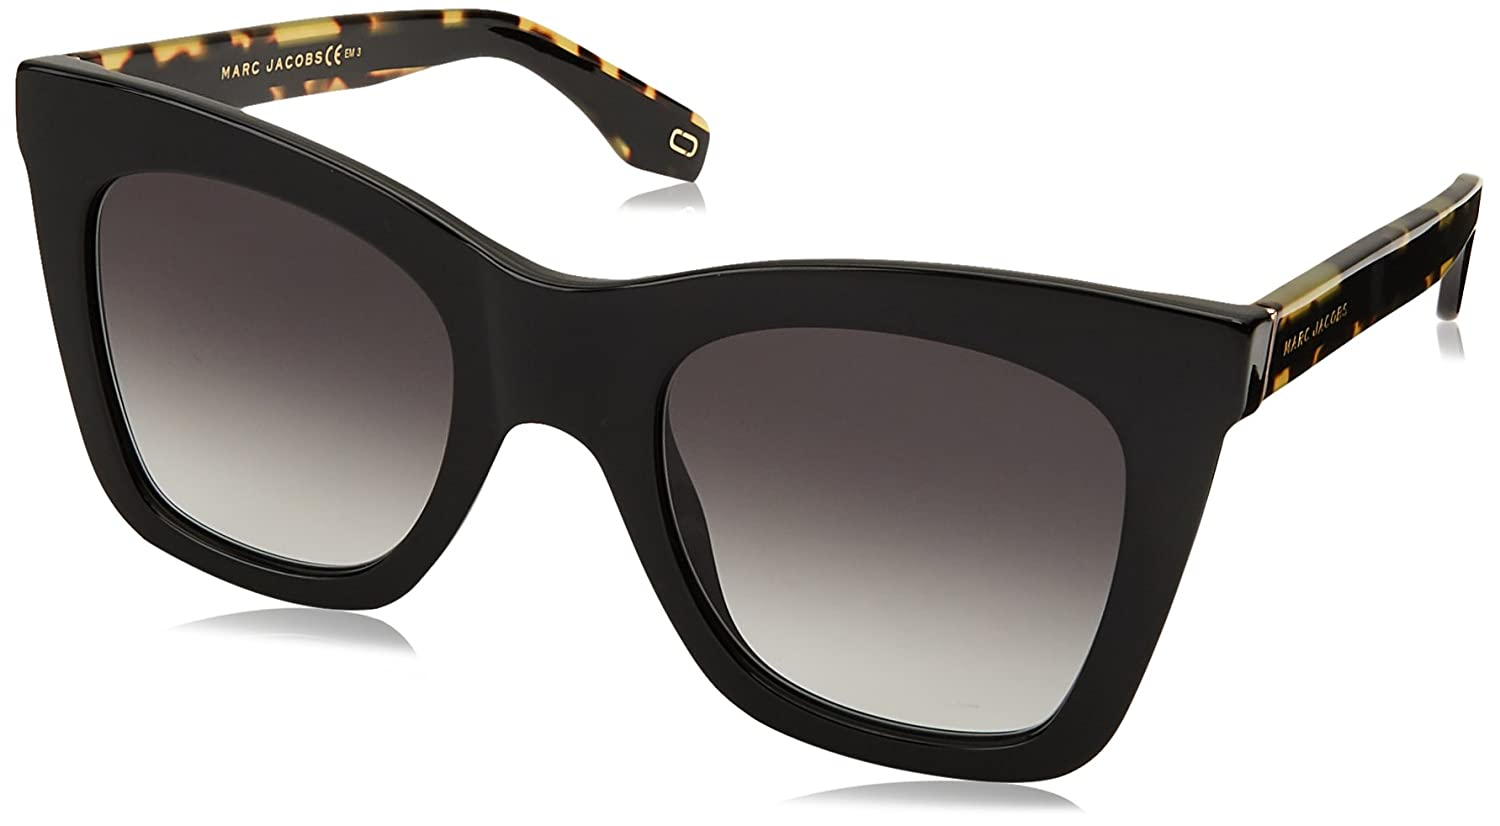 Marc Jacobs Marc 279/S GB Gafas, Black/GY Grey, 50 Mujeres ...